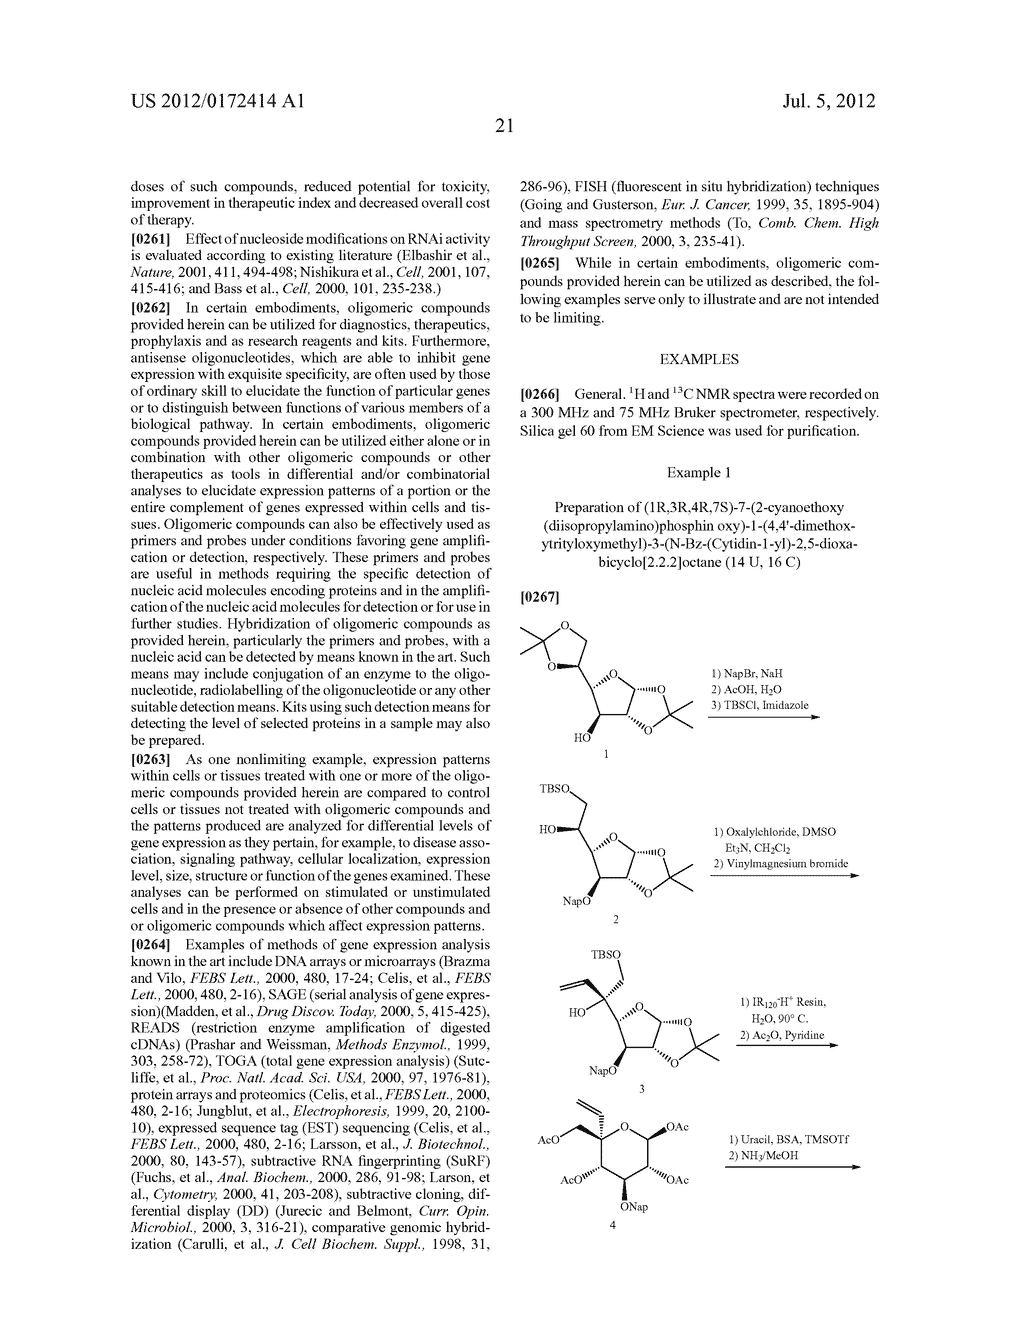 BICYCLIC CYCLOHEXOSE NUCLEIC ACID ANALOGS - diagram, schematic, and image 22